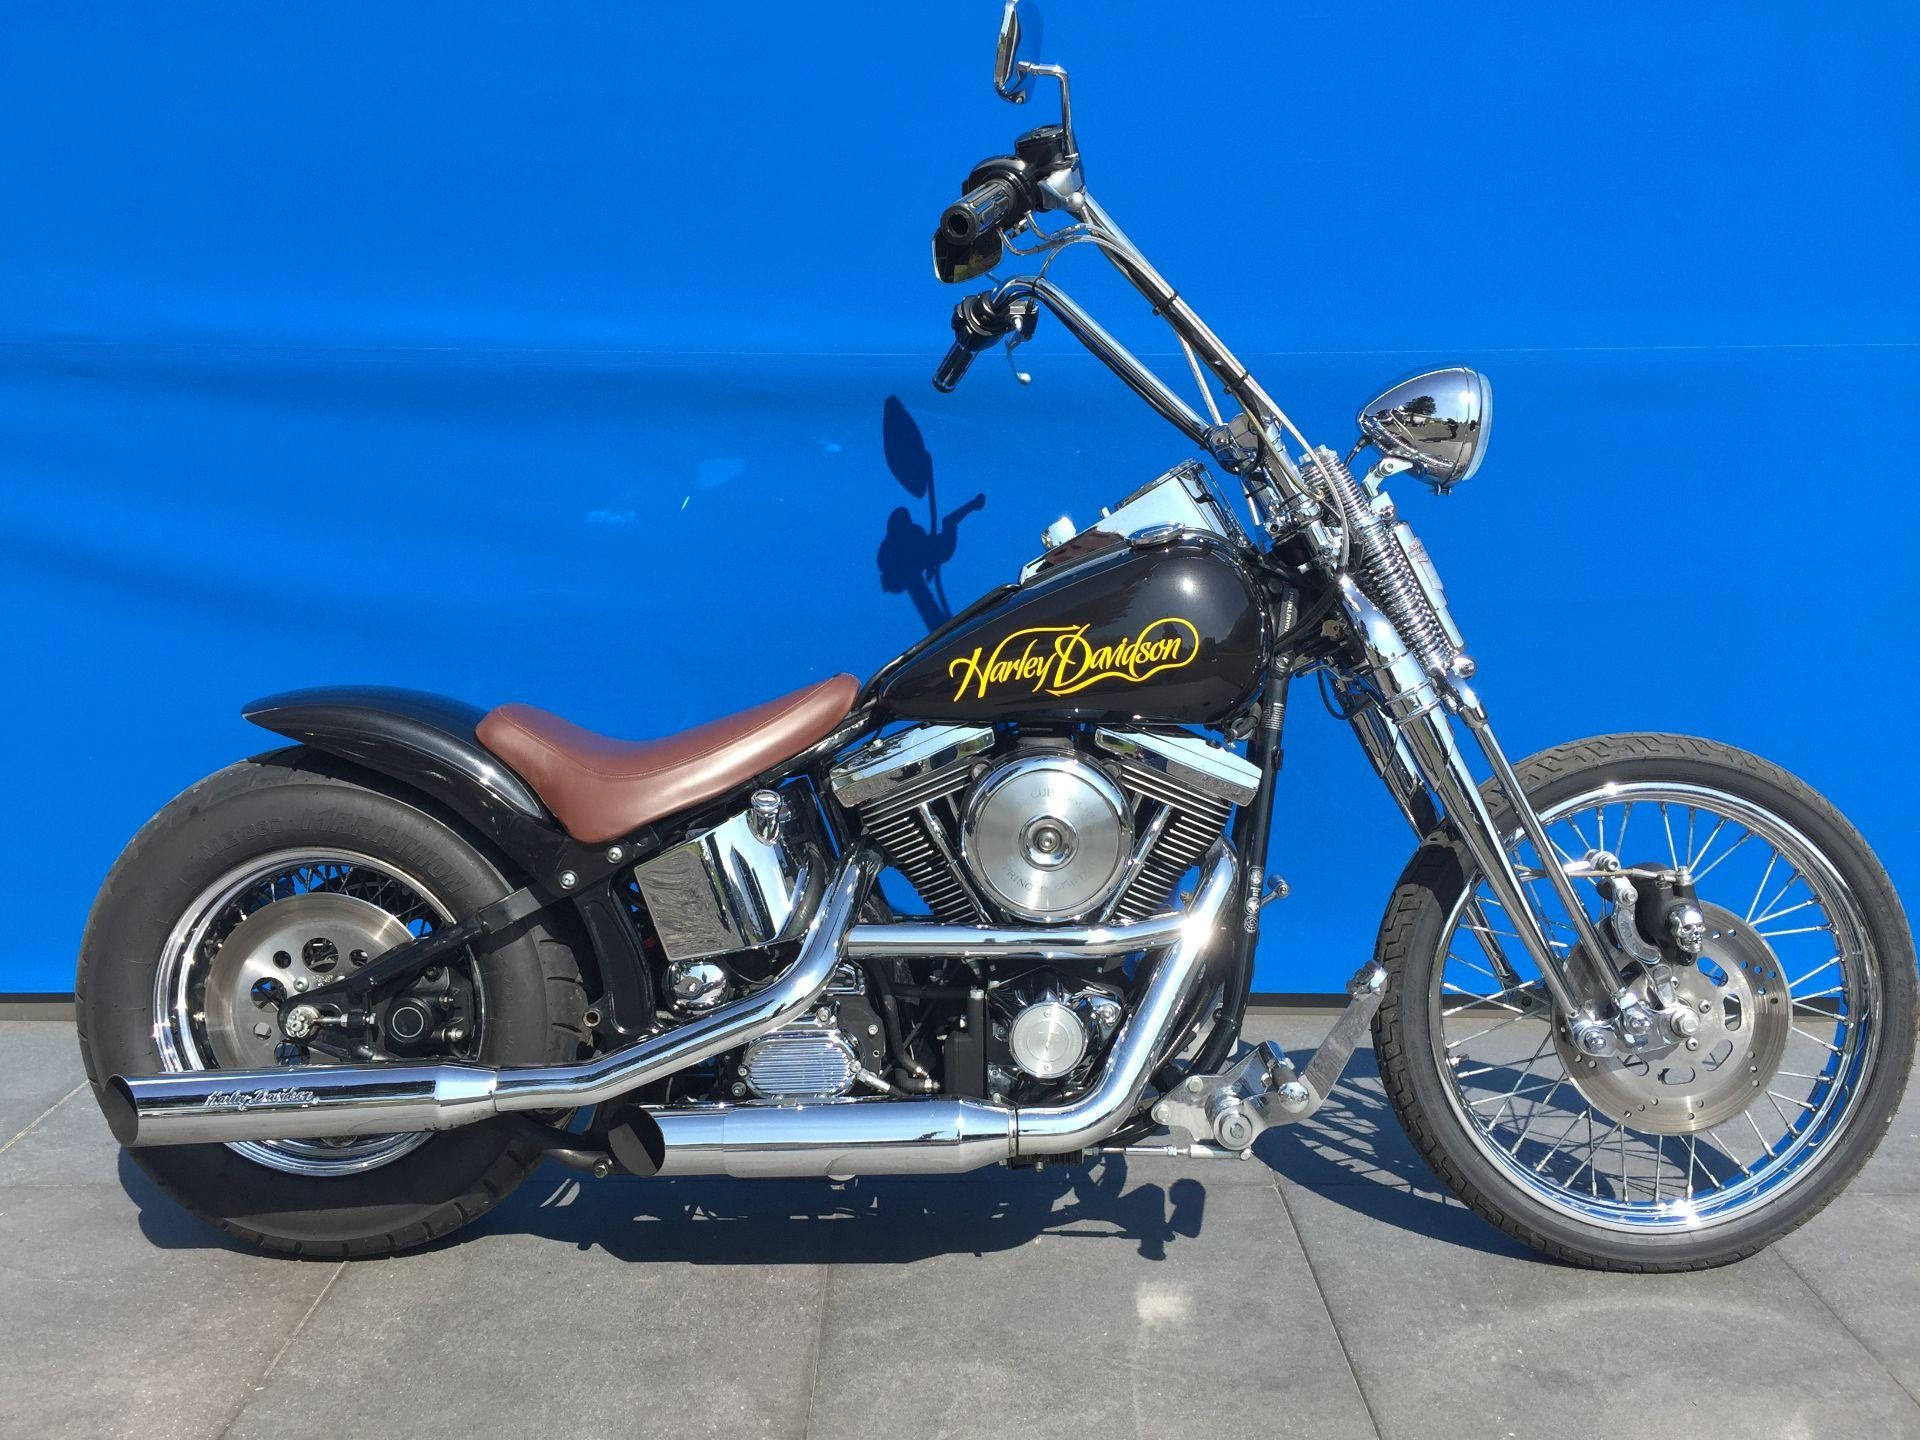 Pieces Occasions Harley Davidson Leboncoin